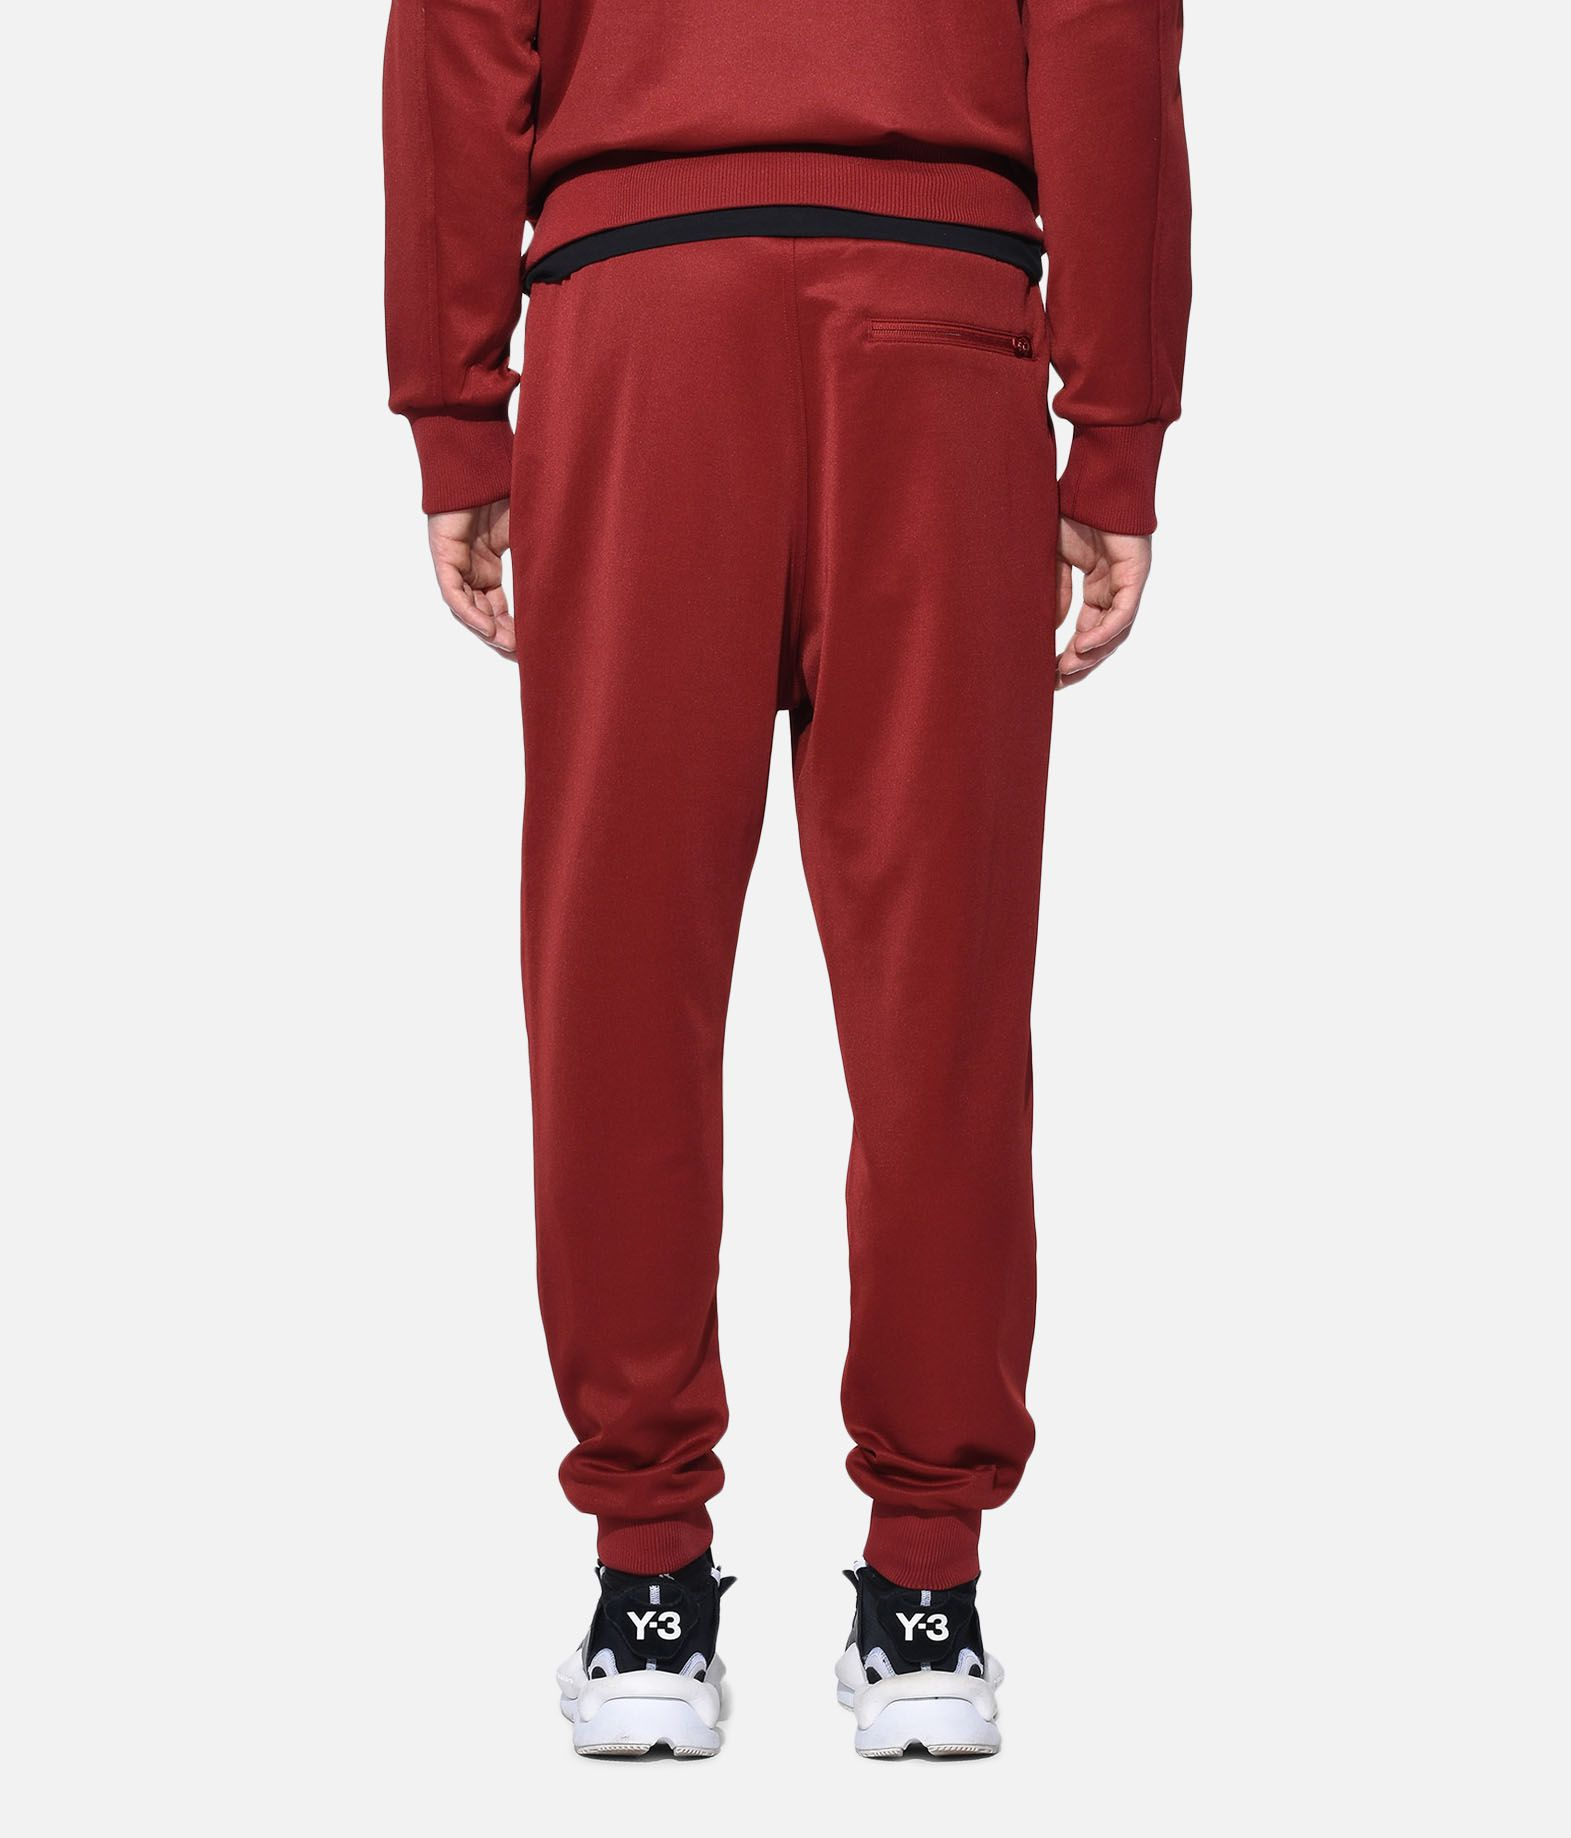 Y-3 Y-3 Classic Track Pants Track pant Man d